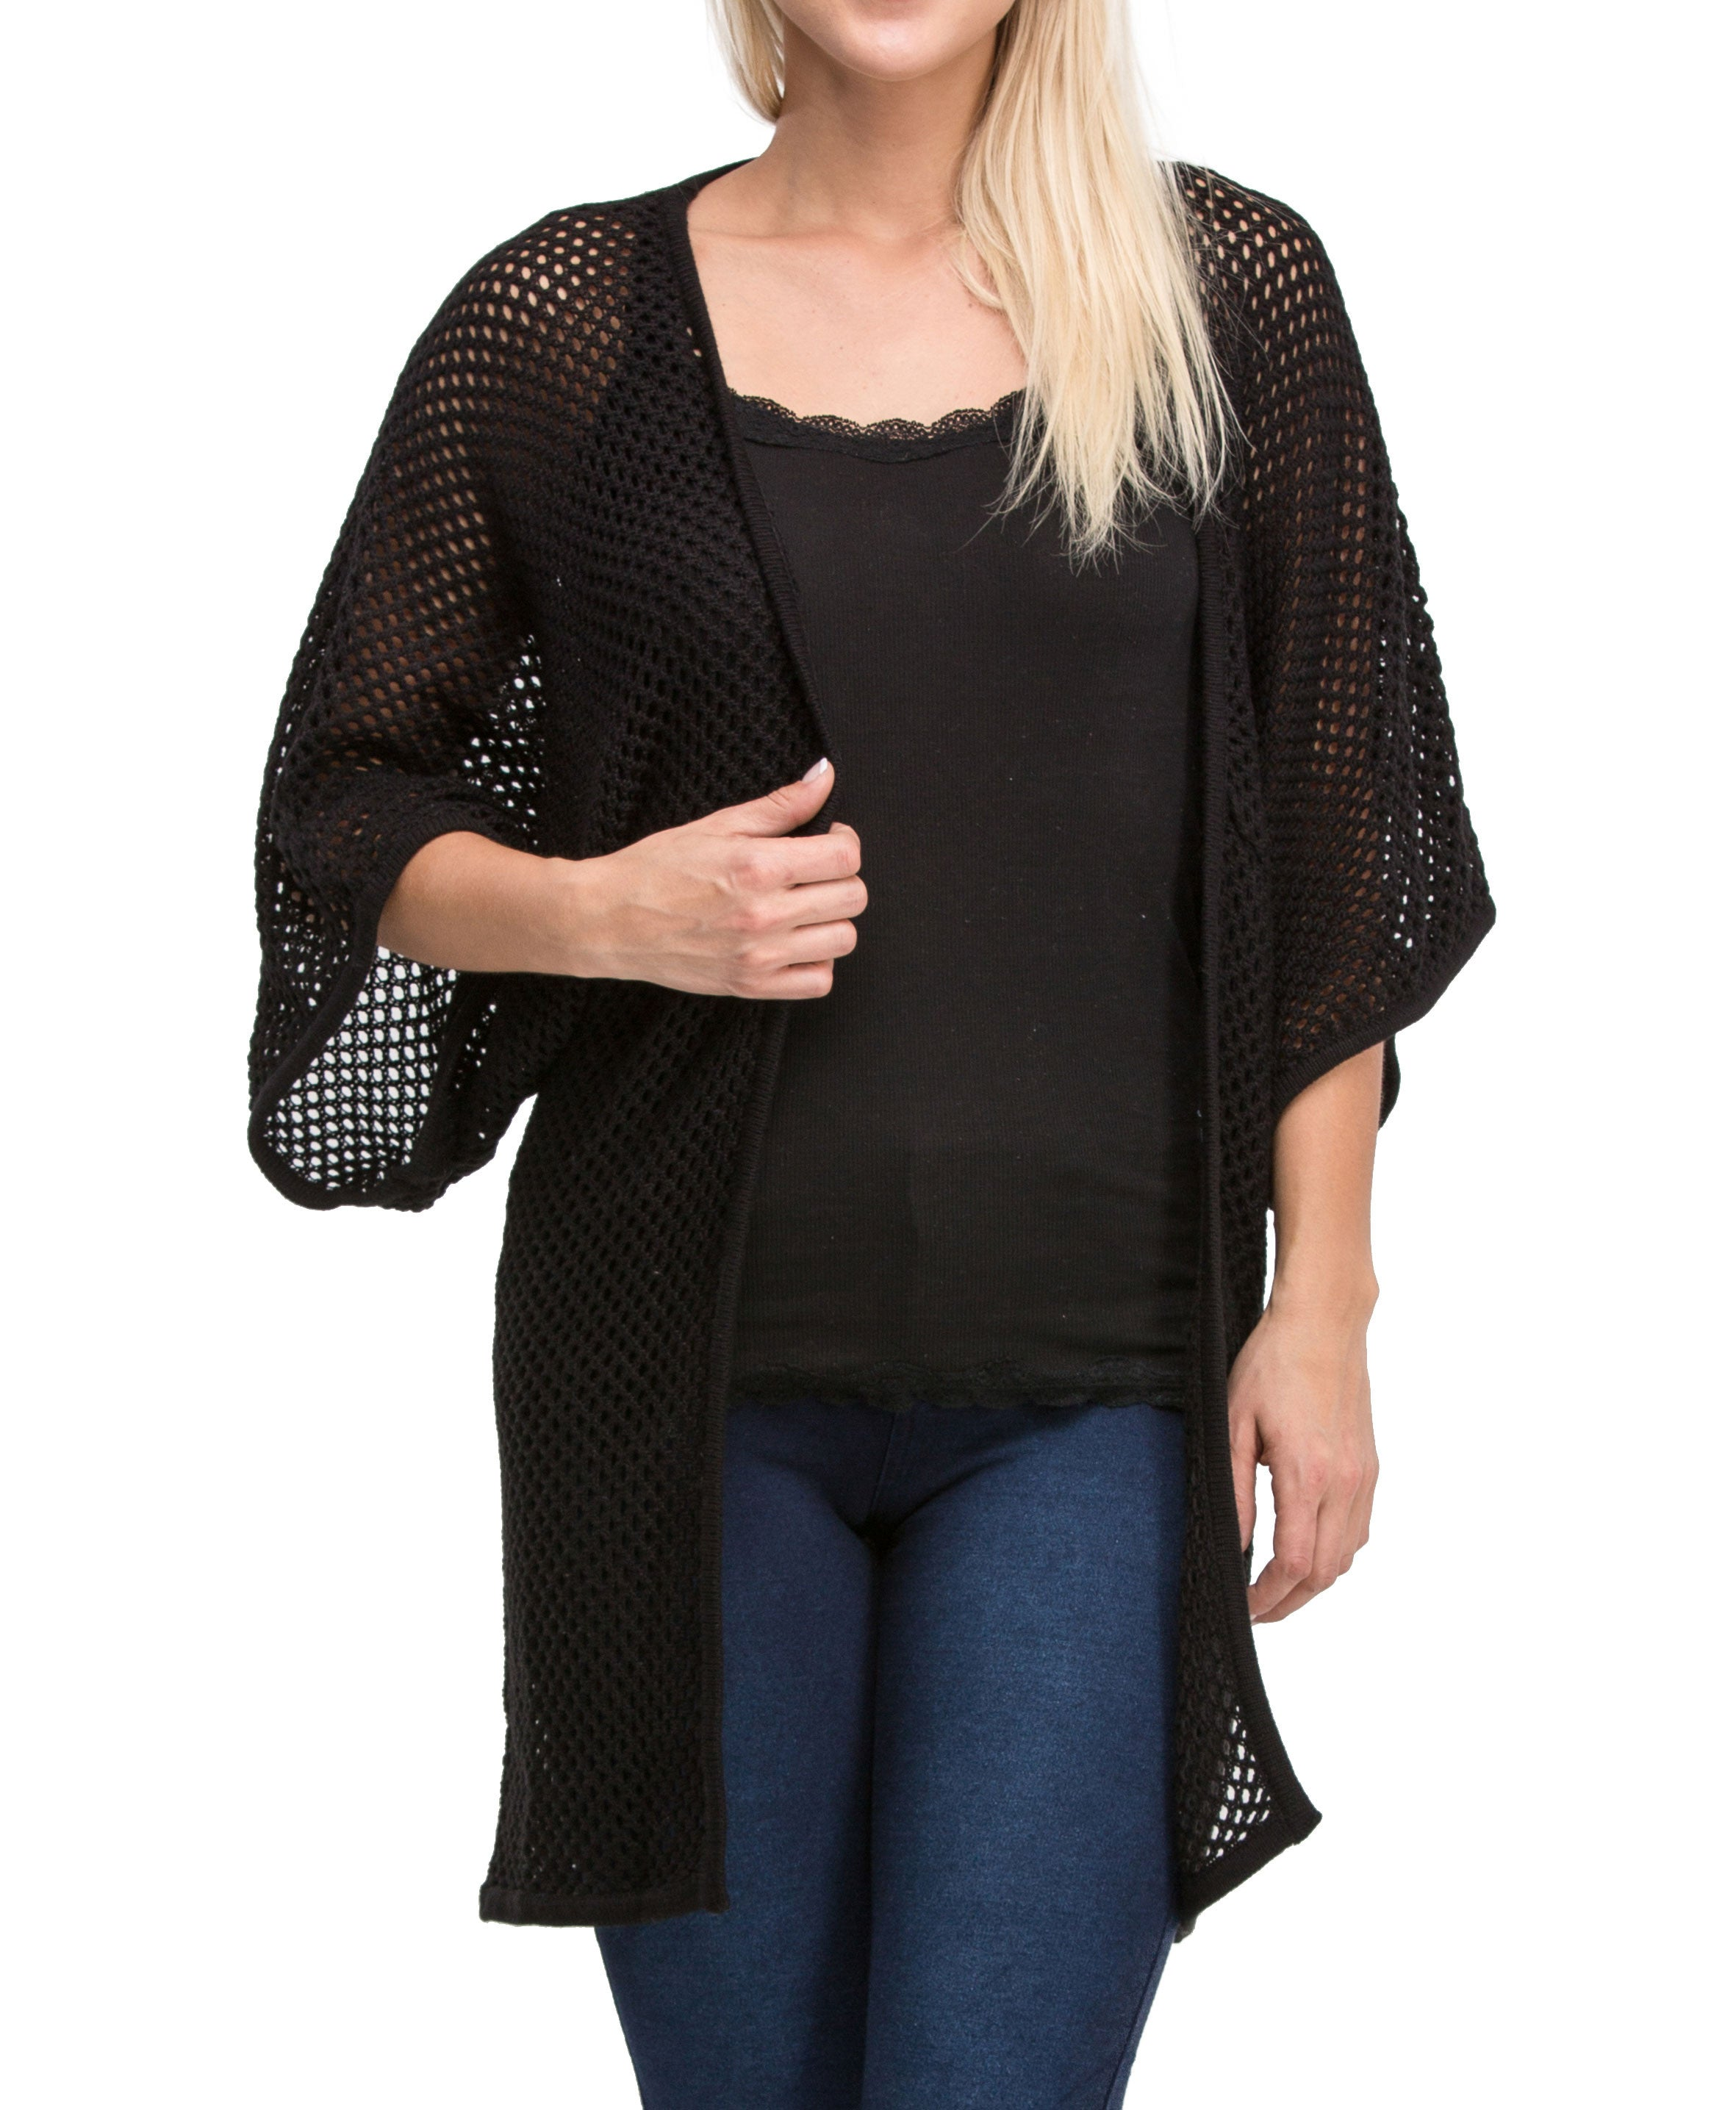 Kimono Style Medium Sleeve Mesh Knit Cardigan Sweater (Black) - Poplooks